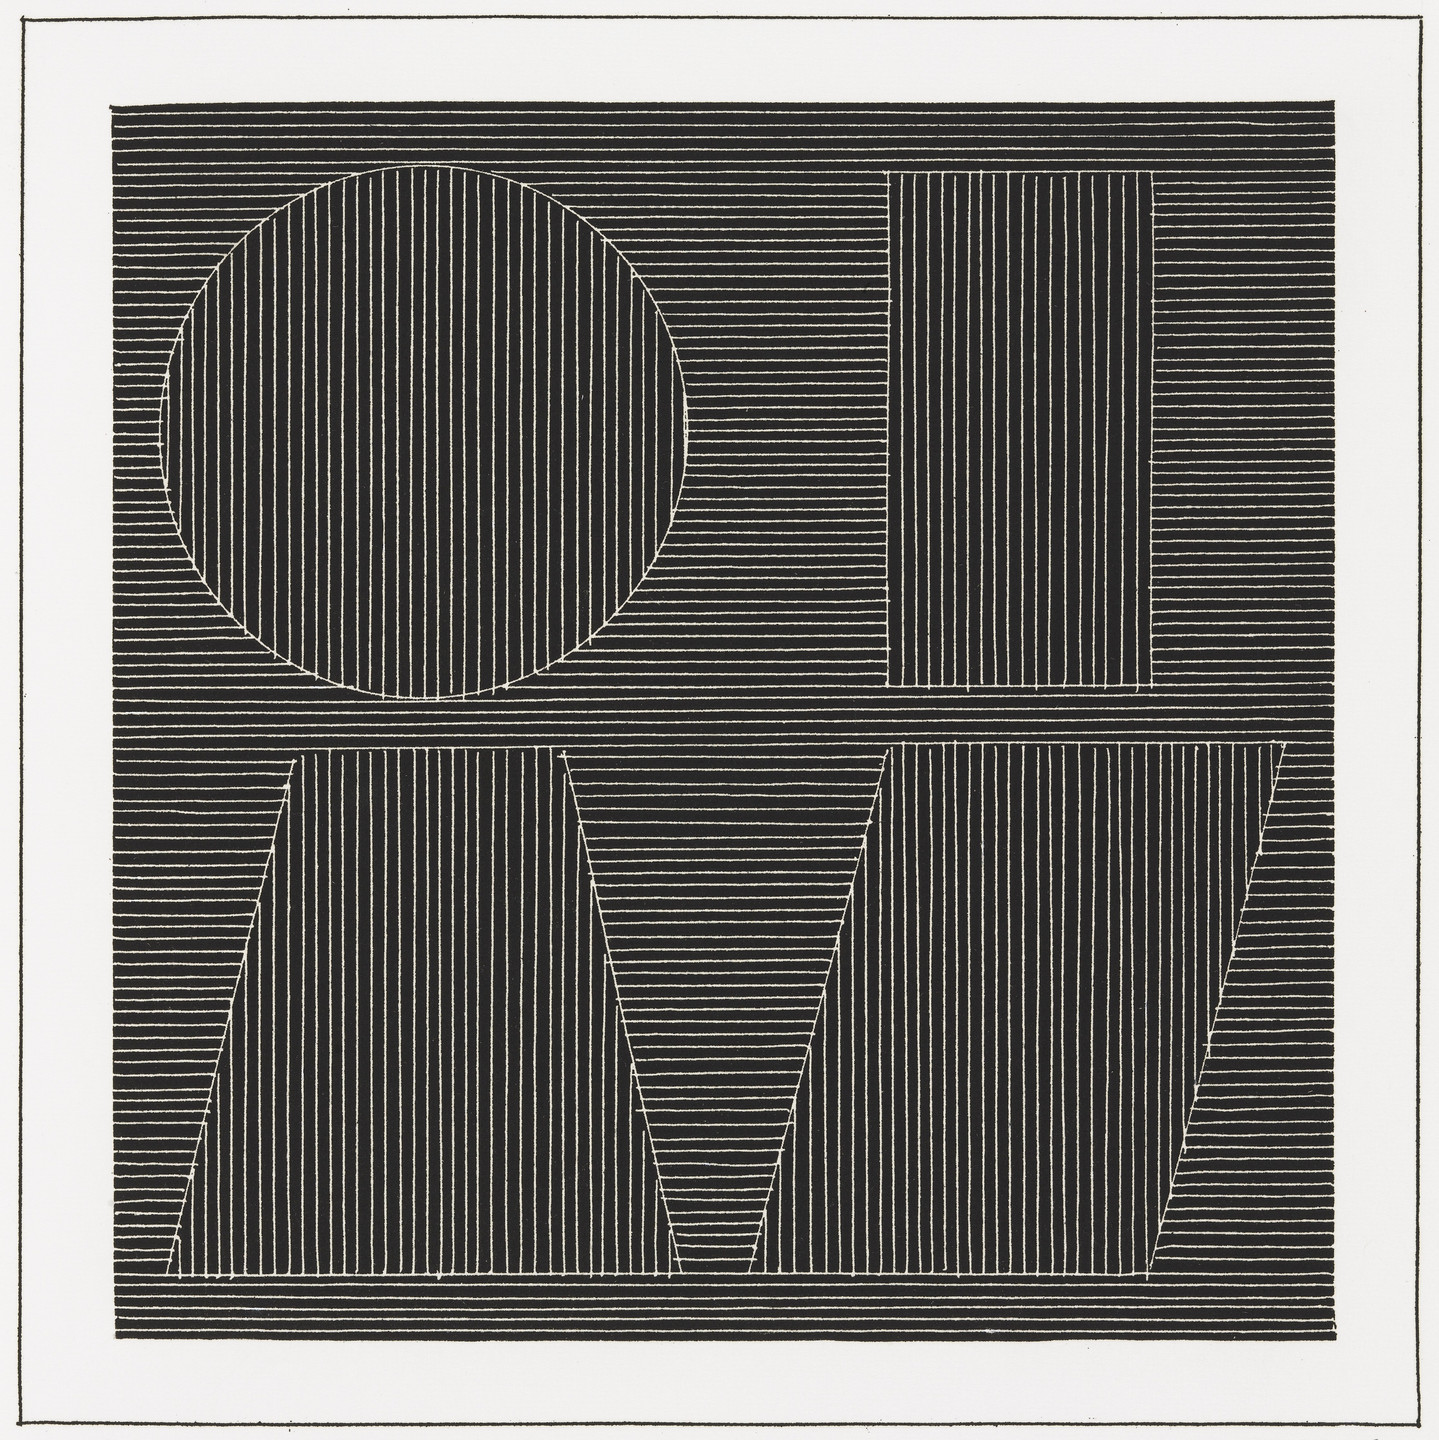 Sol LeWitt. Plate (folio 56) from Six Geometric Figures and All Their Combinations, Volume I. 1980